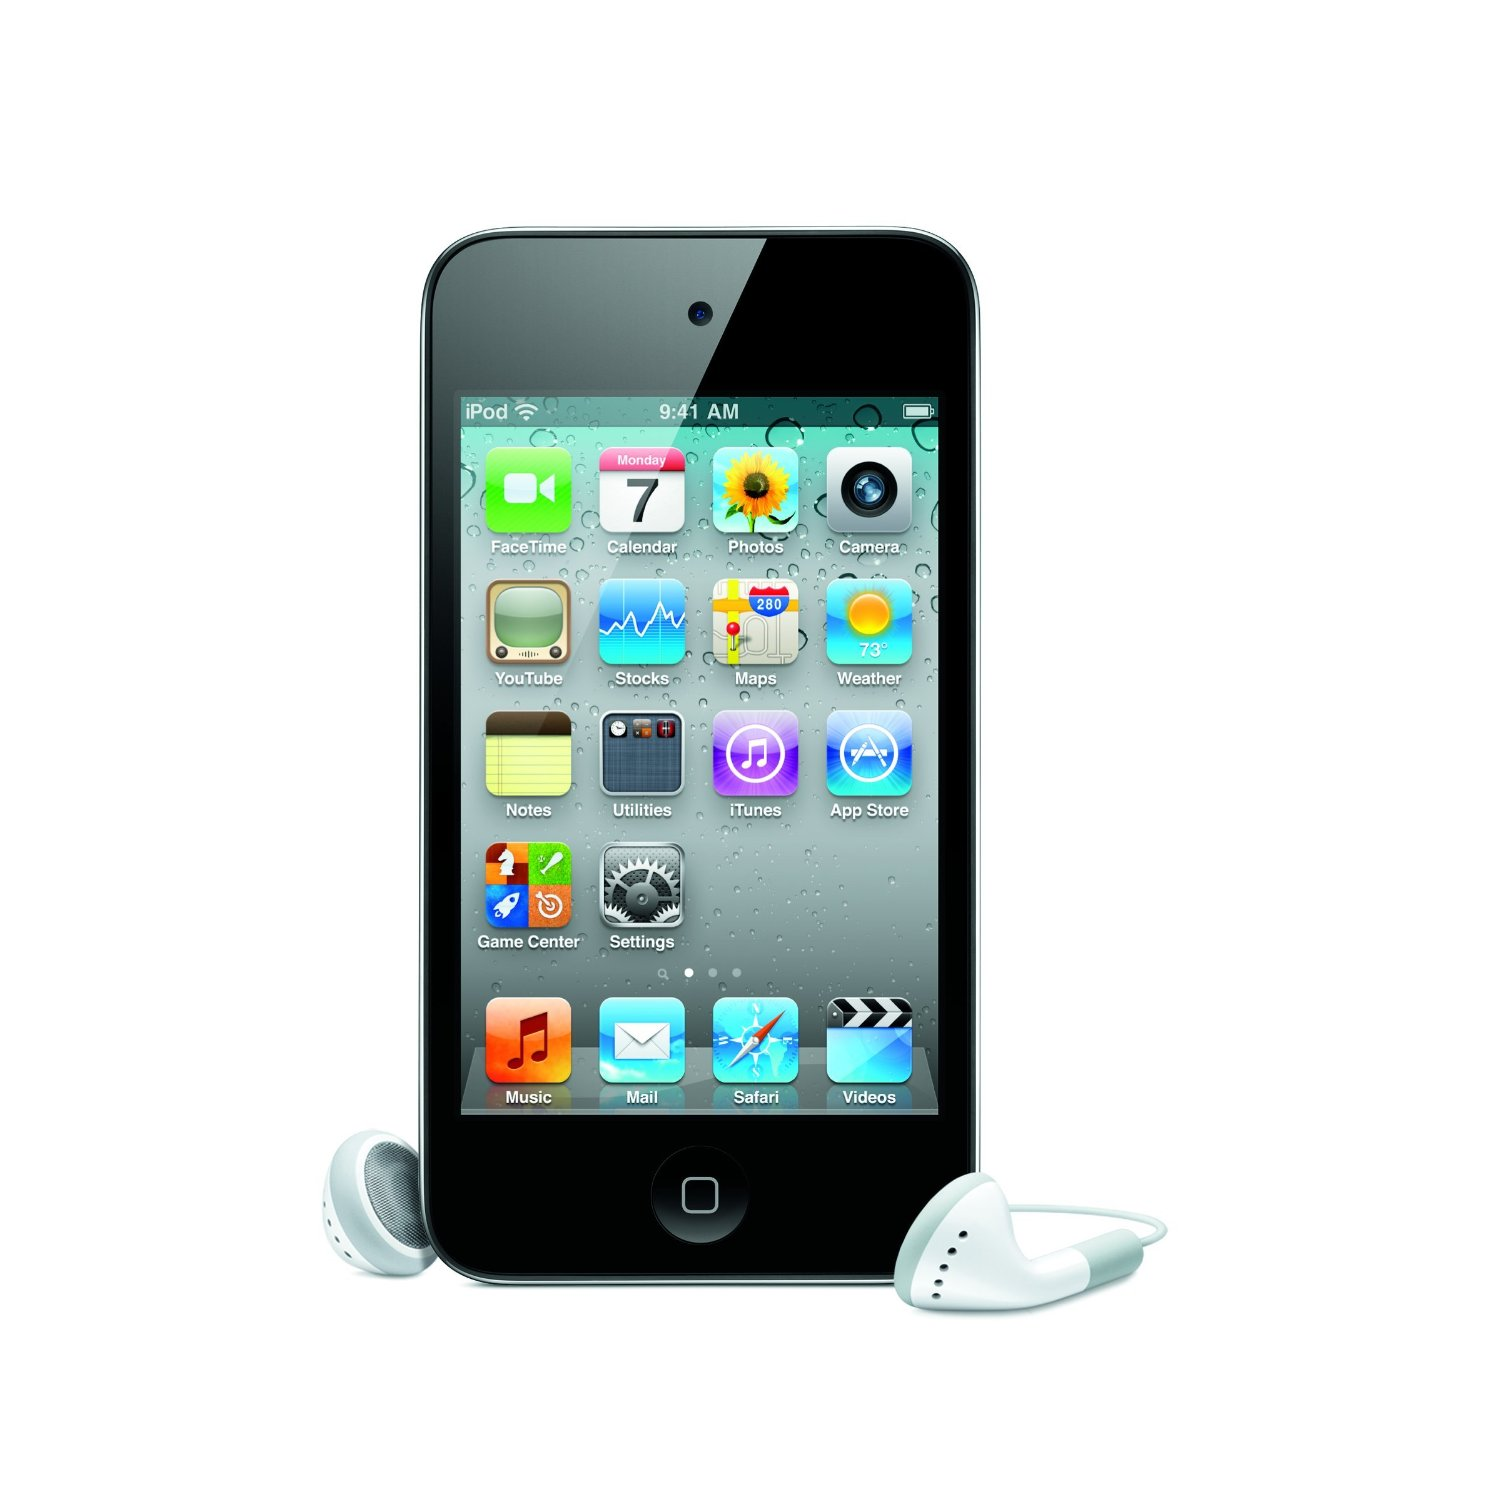 apple iphone 4 user guide, apple coming out new iphone 09, iphone 4 release date, apple iphone os 4, apple iphone 4 generation, apple iphone 4 reviews, apple iphone 4 cases, apple iphone manual 4-15